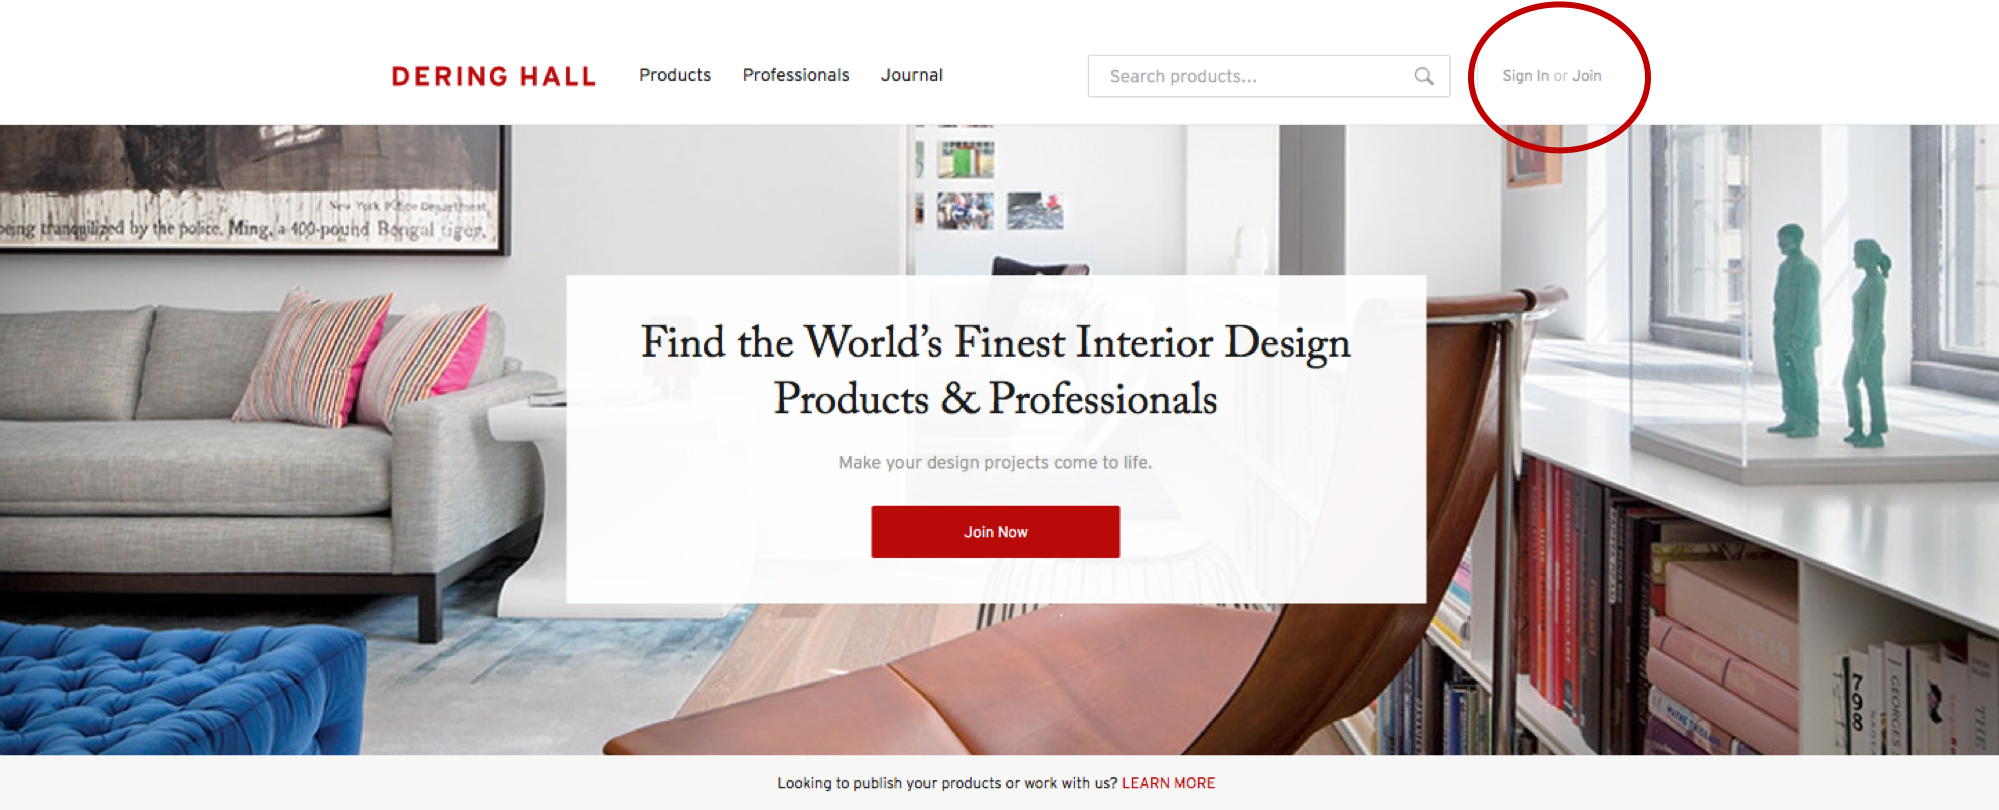 First, sign in or log into Dering Hall in the top right header of the homepage at deringhall.com.